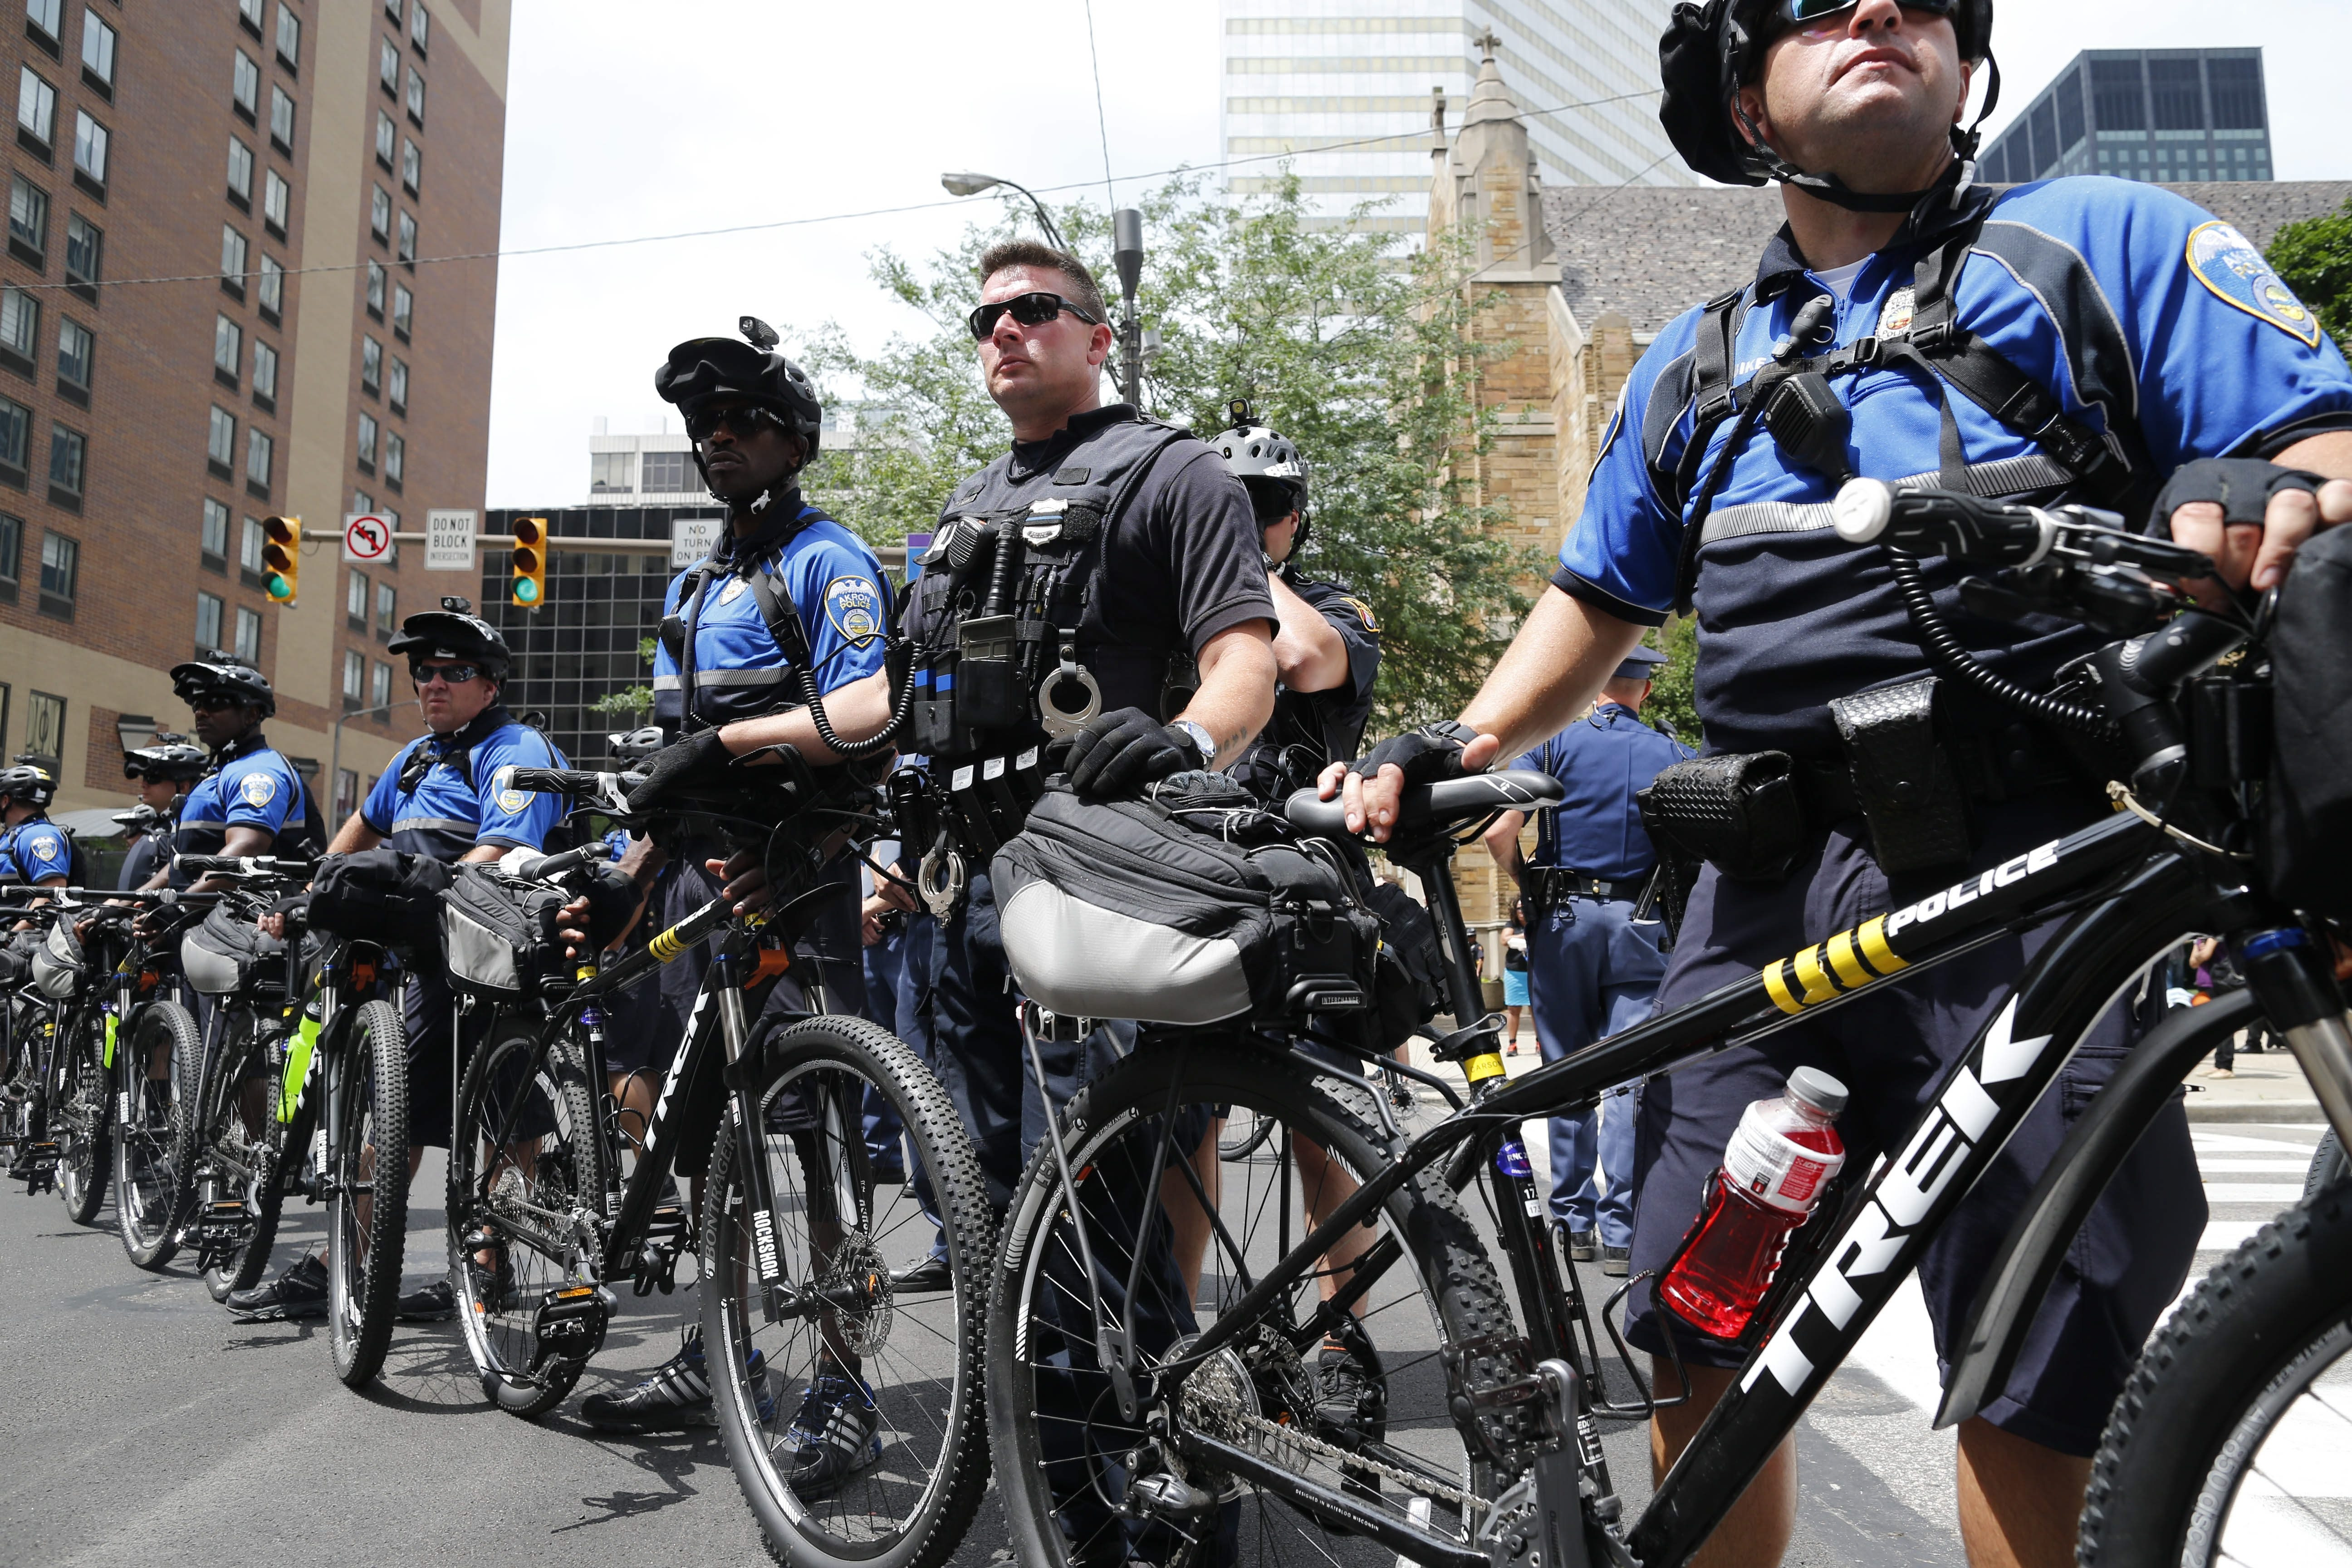 Police officers use bicycles to establish a perimeter to keep protestors from marching down an open road in Cleveland, Ohio, Monday, July 18, 2016.  (Photo by Derek Gee)